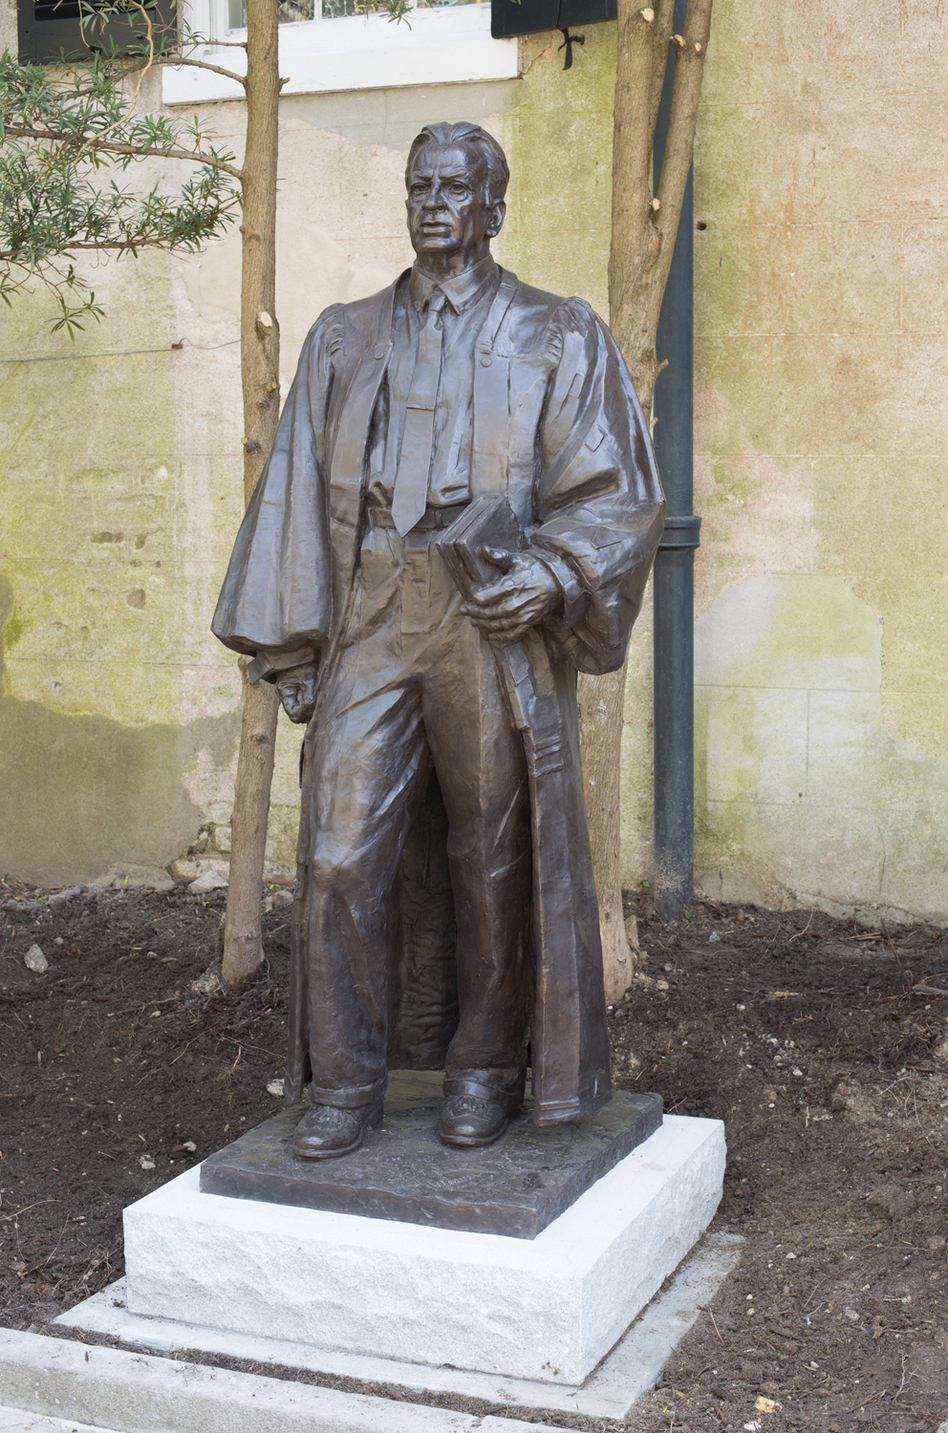 Sculptor Richard Weaver created this life-sized sculpture of federal judge J. Waties Waring. (Rick Rhodes/Courtesy of the J Waties Waring Statue Committee)